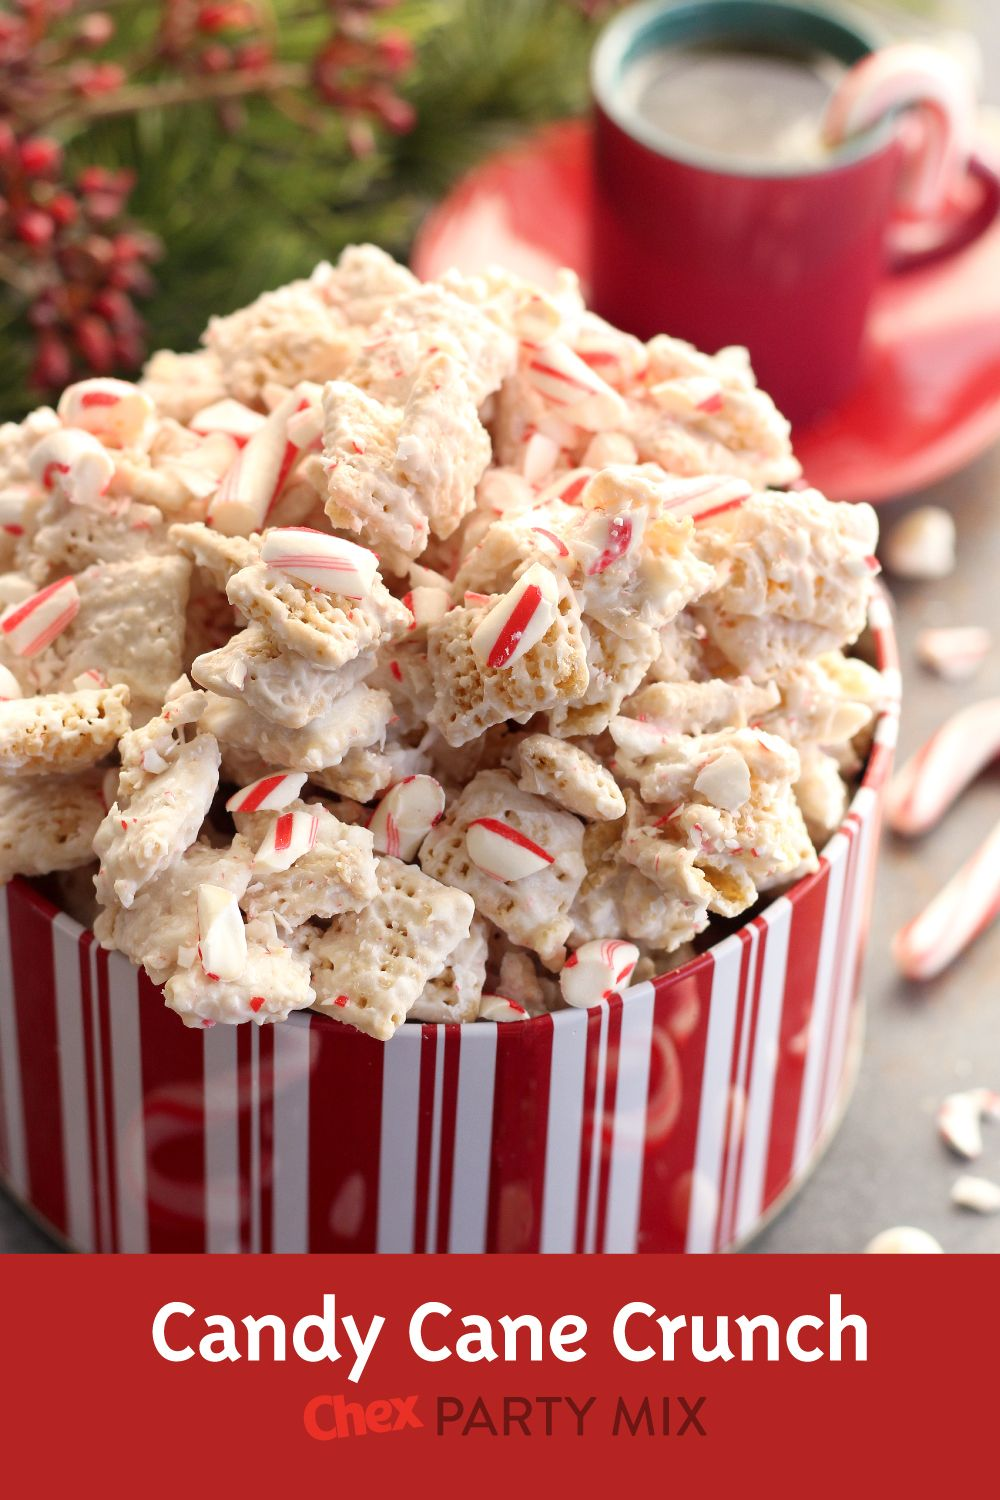 Gluten-Free Candy Cane Crunch Chex™ Party Mix